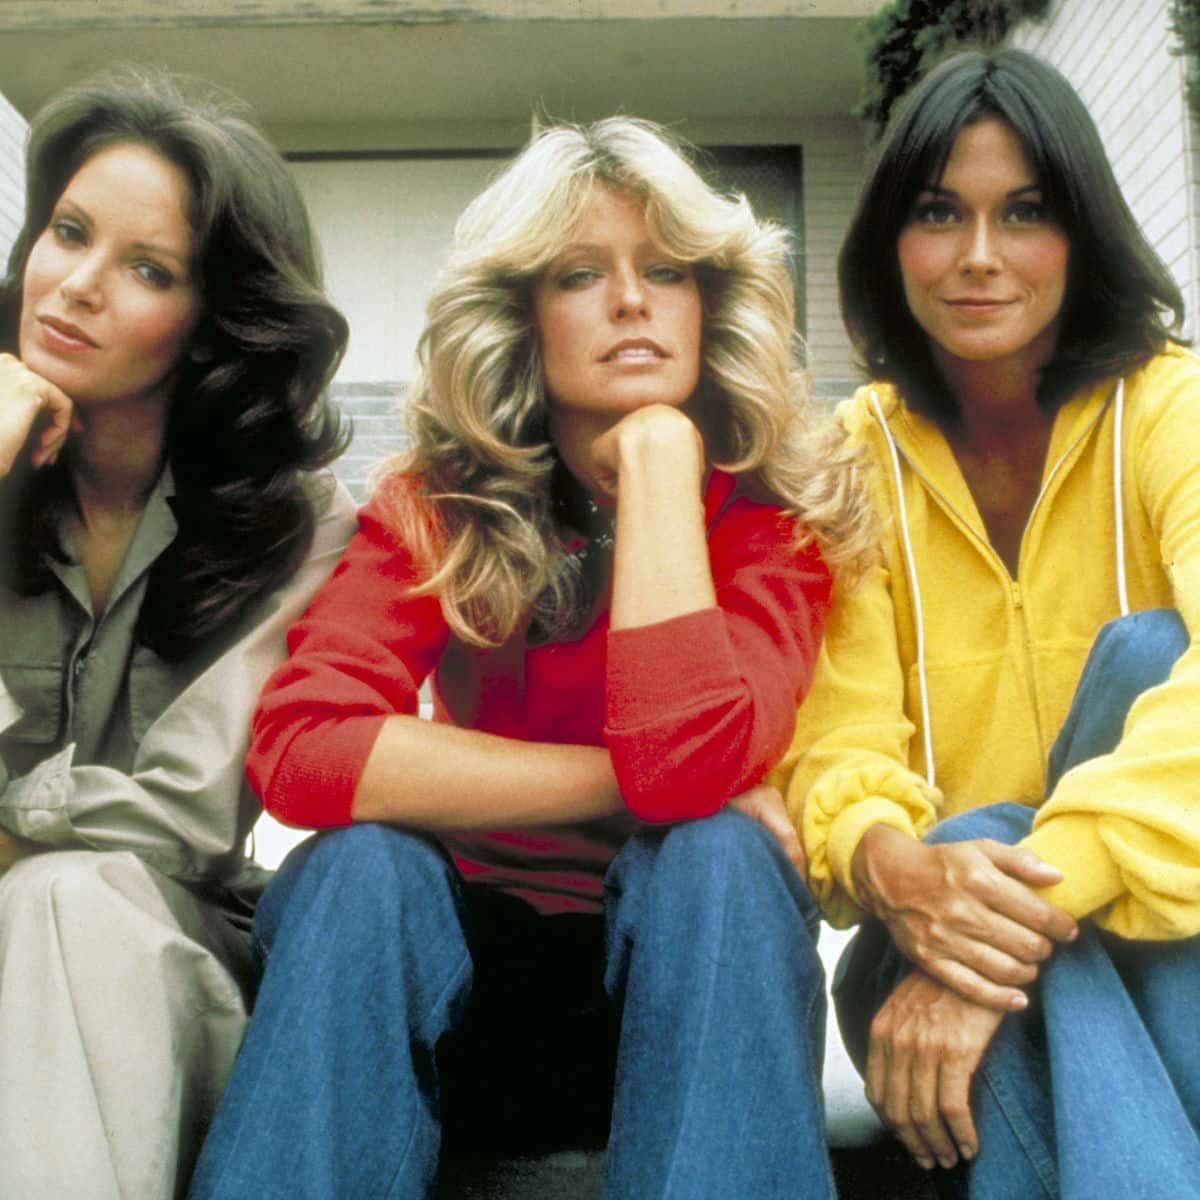 Charlies Angels 1 20 Kick-Ass Facts About Charlie's Angels (2000)